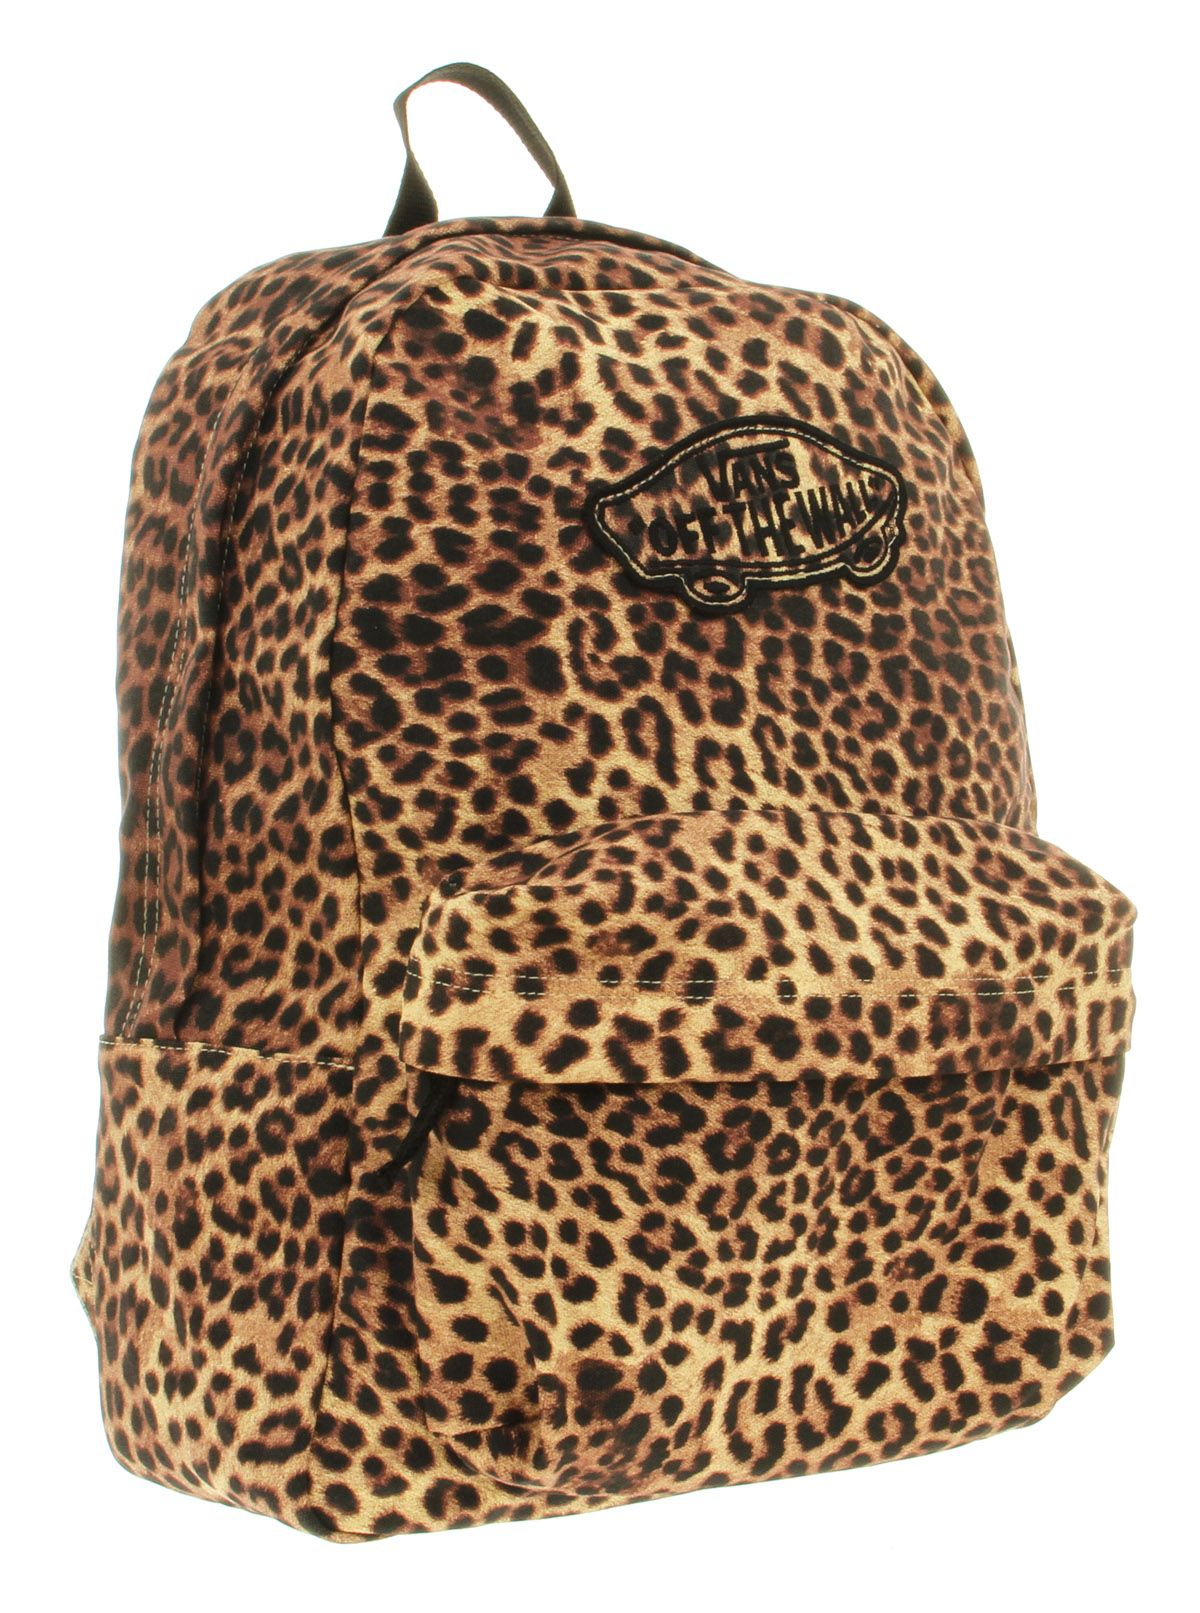 118aed063e2 Vans realm backpack leopard print